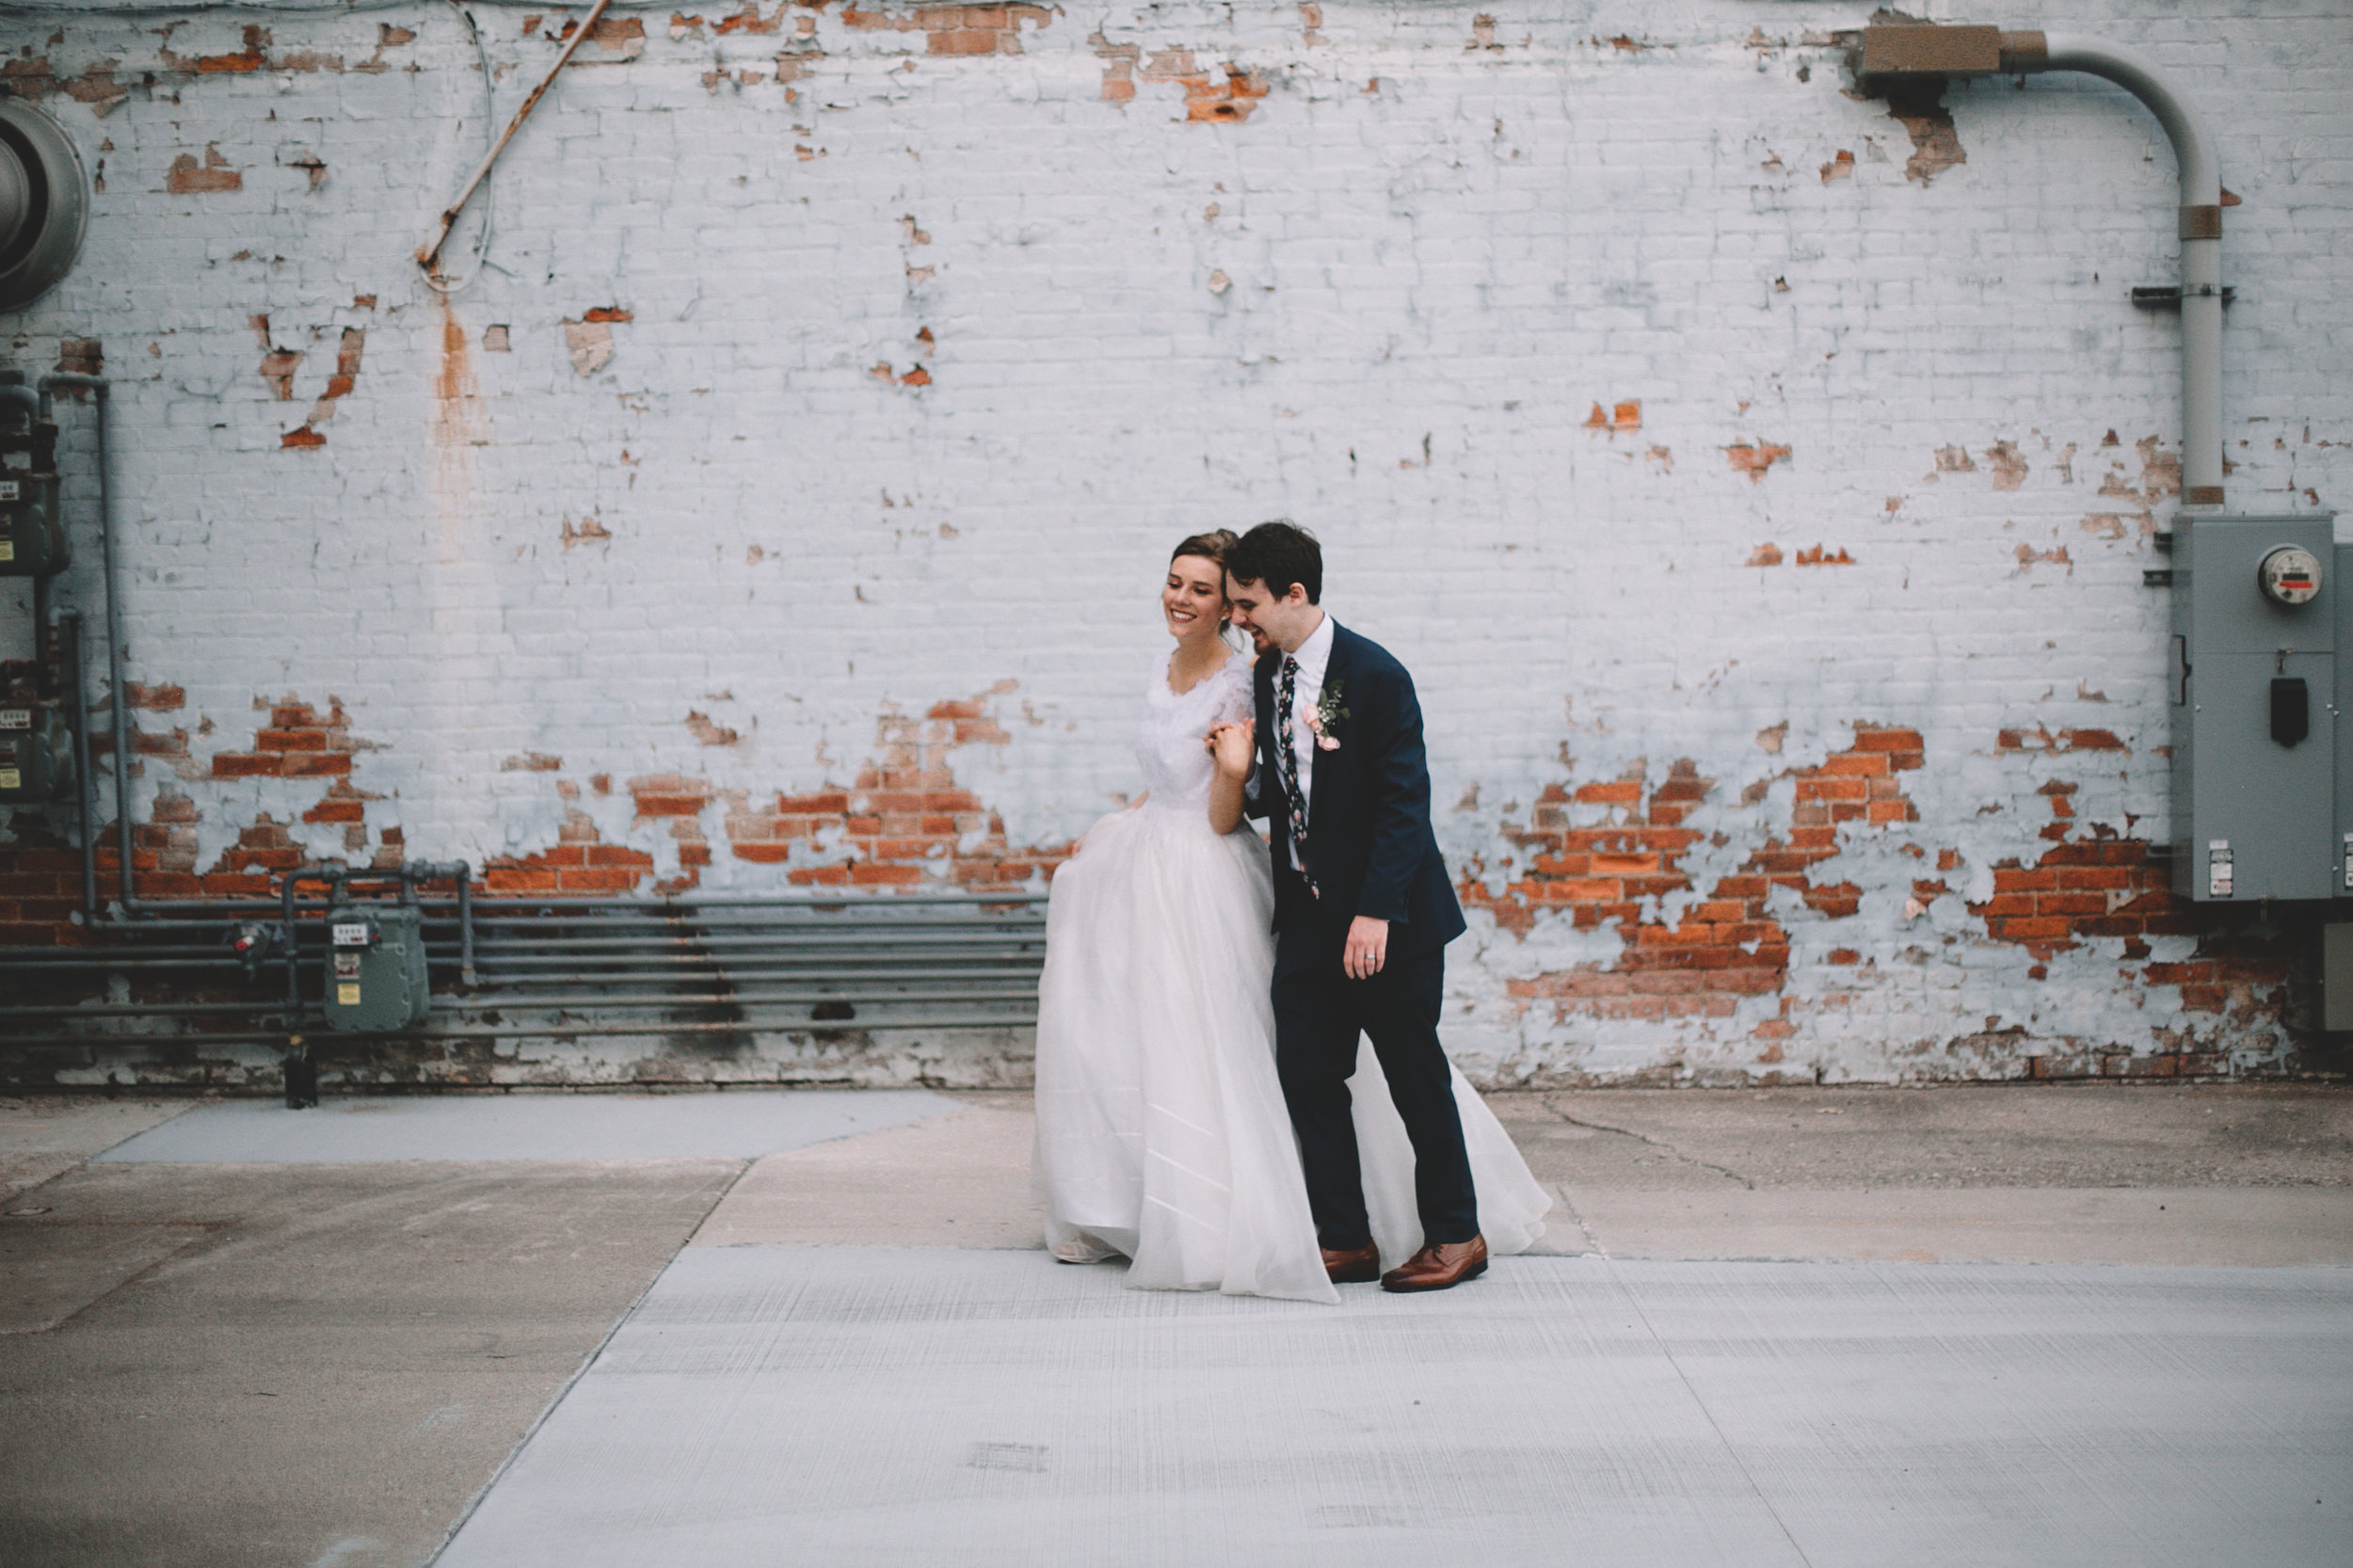 Urban Distressed Brick Wall Bridal Portraits Again We Say Rejoice Photography (15 of 18).jpg